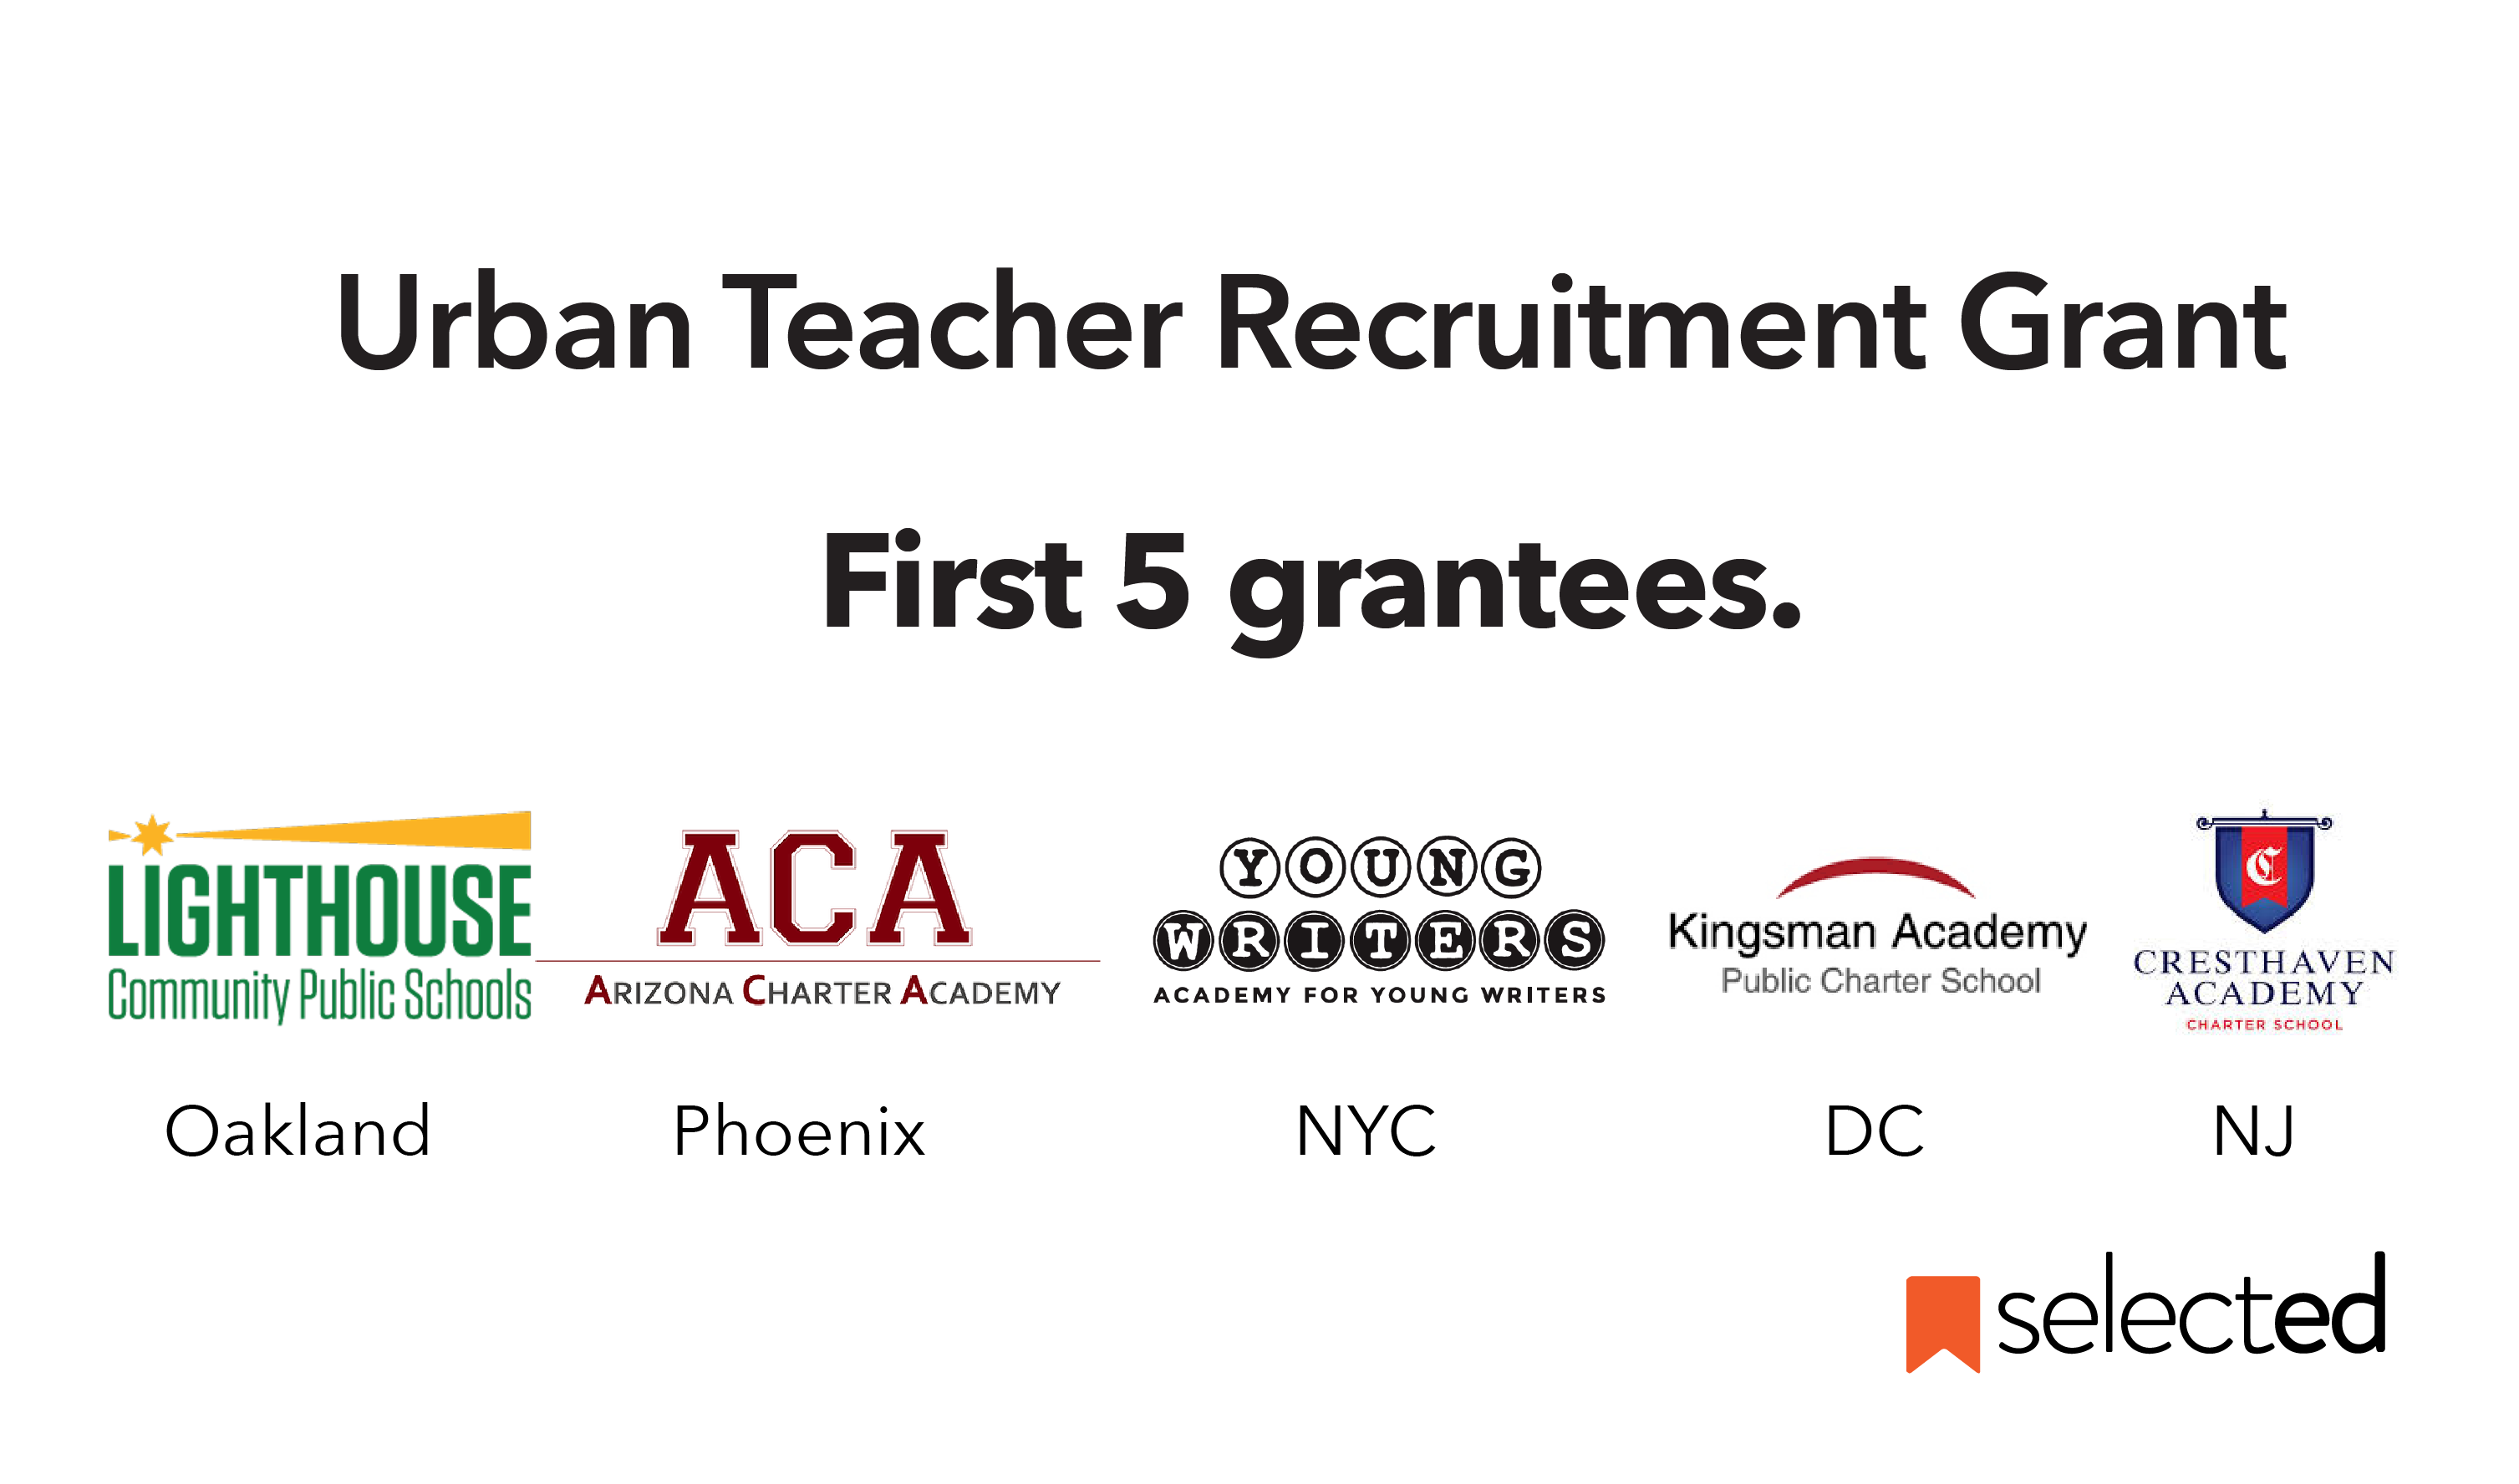 Early Decision Grantees of the 2020 Urban Teacher Recruitment Grant